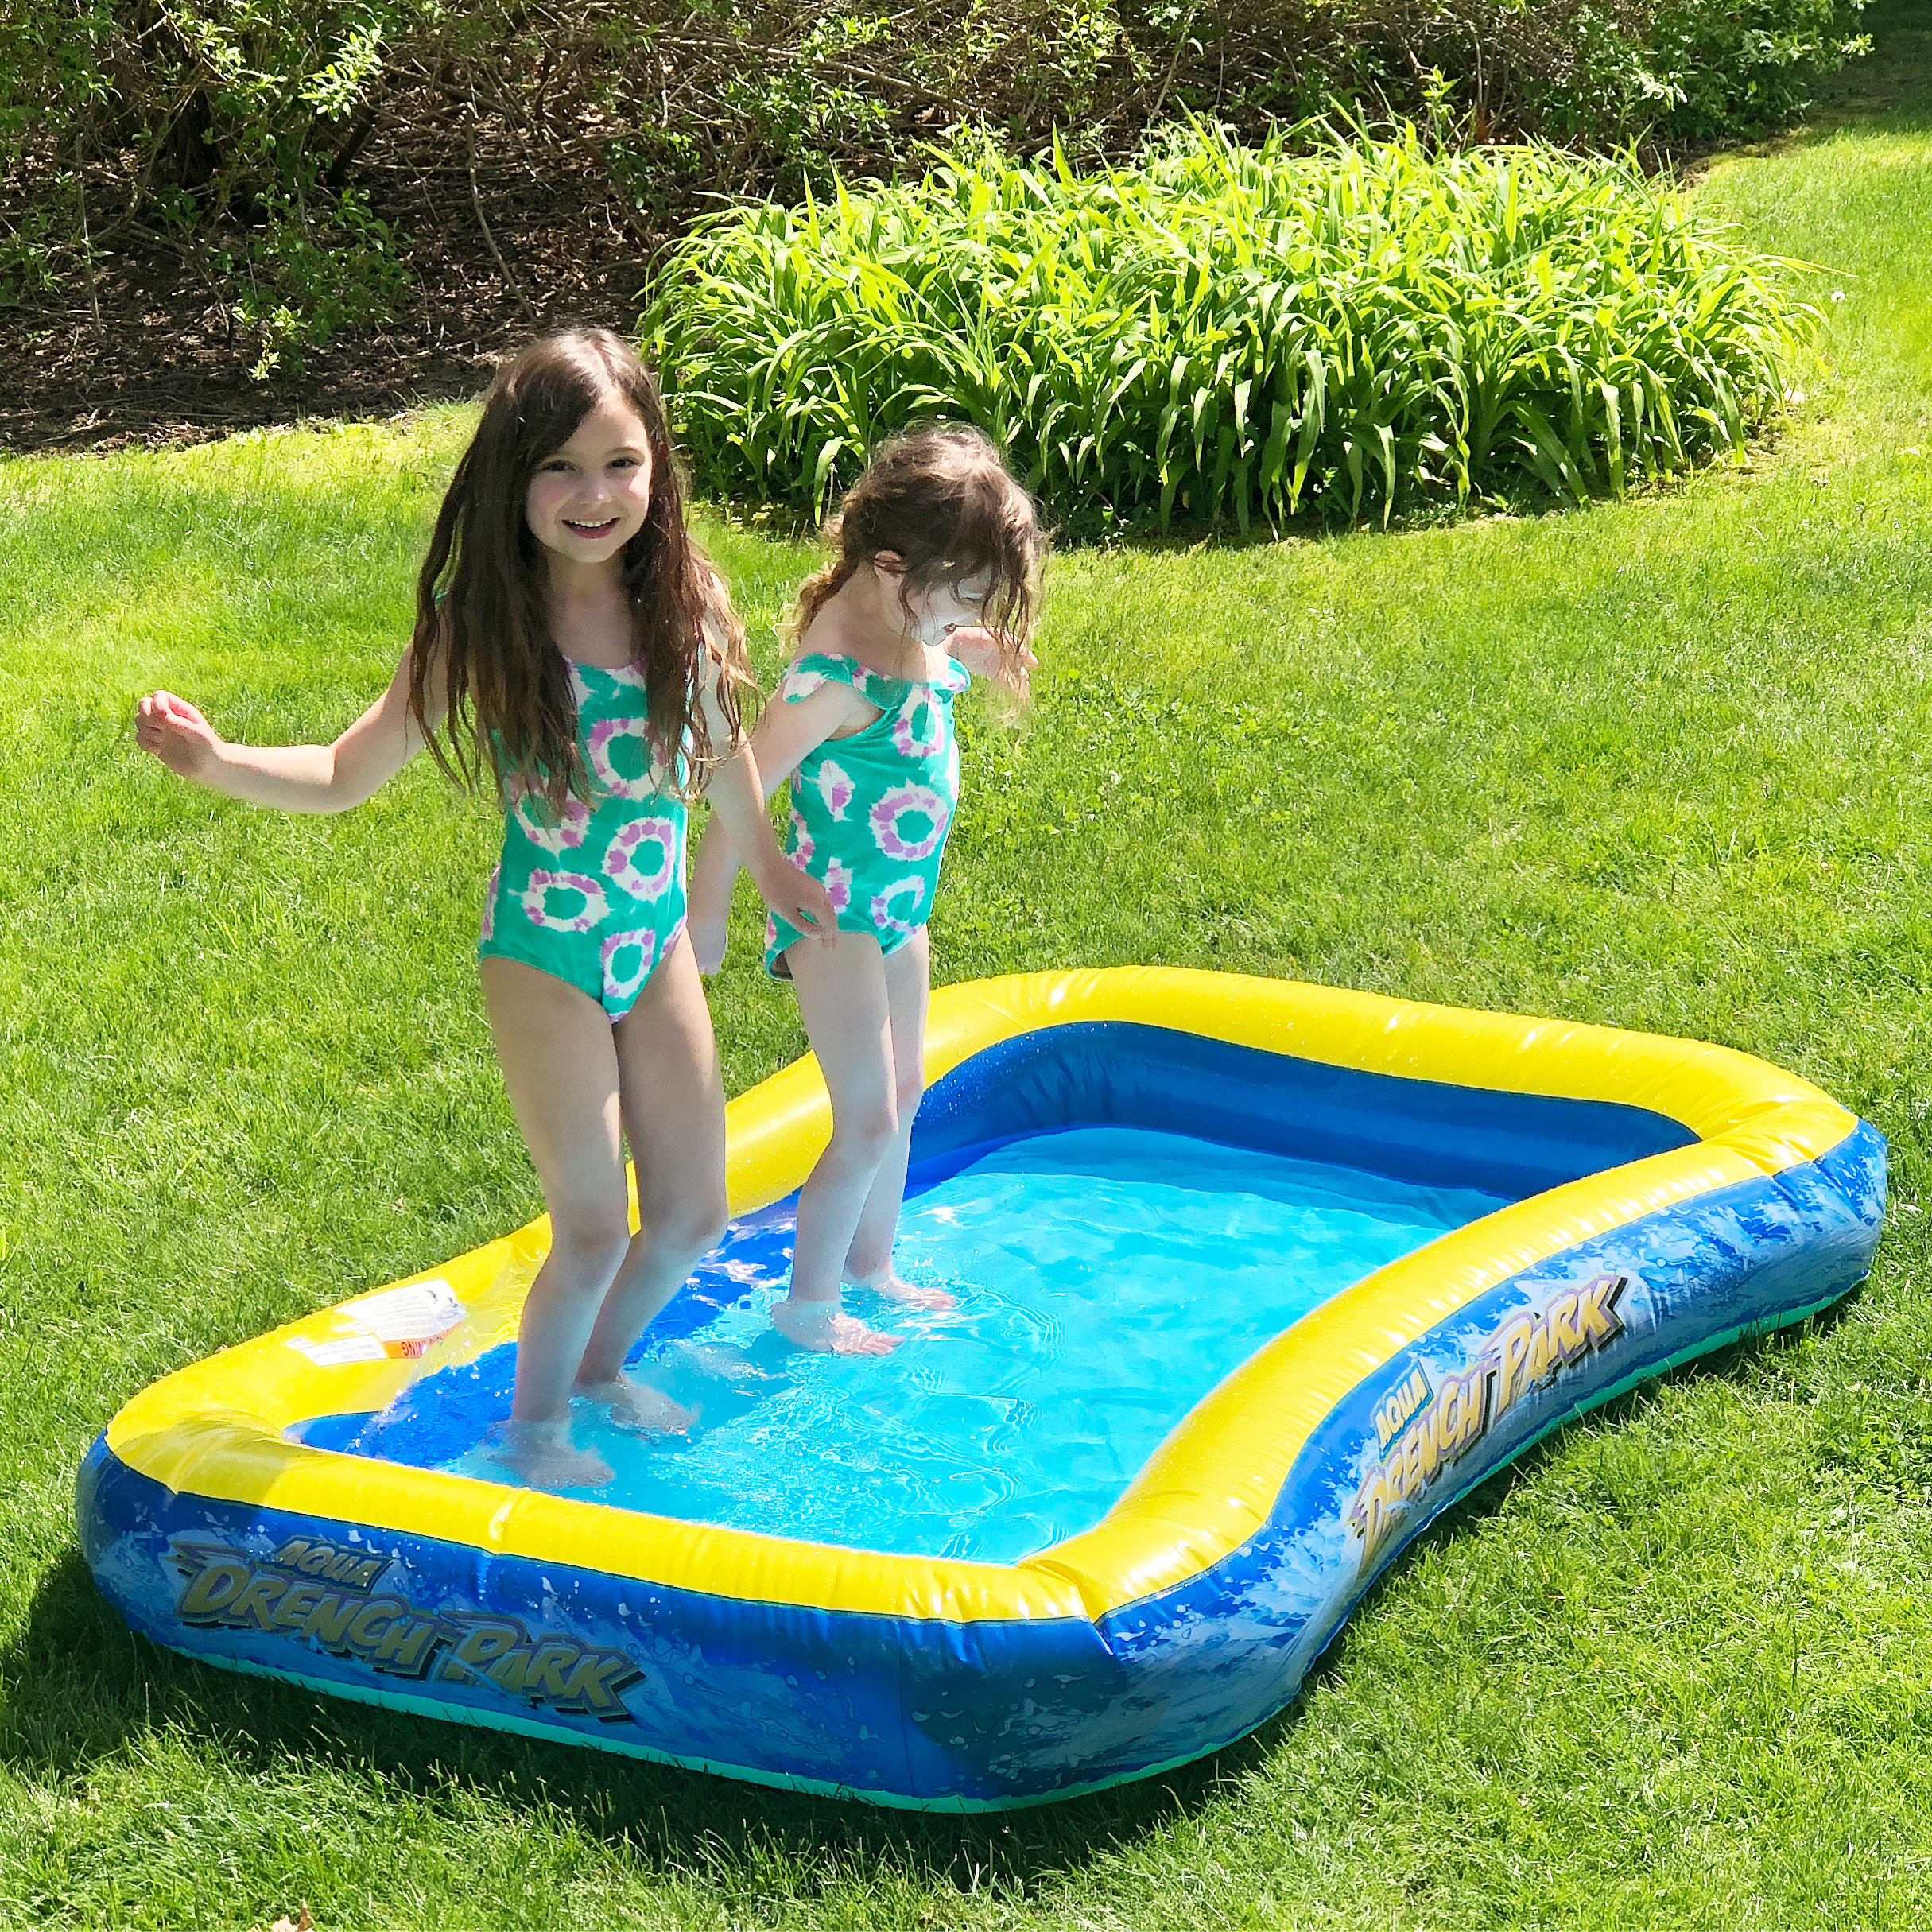 little girls playing in outdoor blow up pool for summer